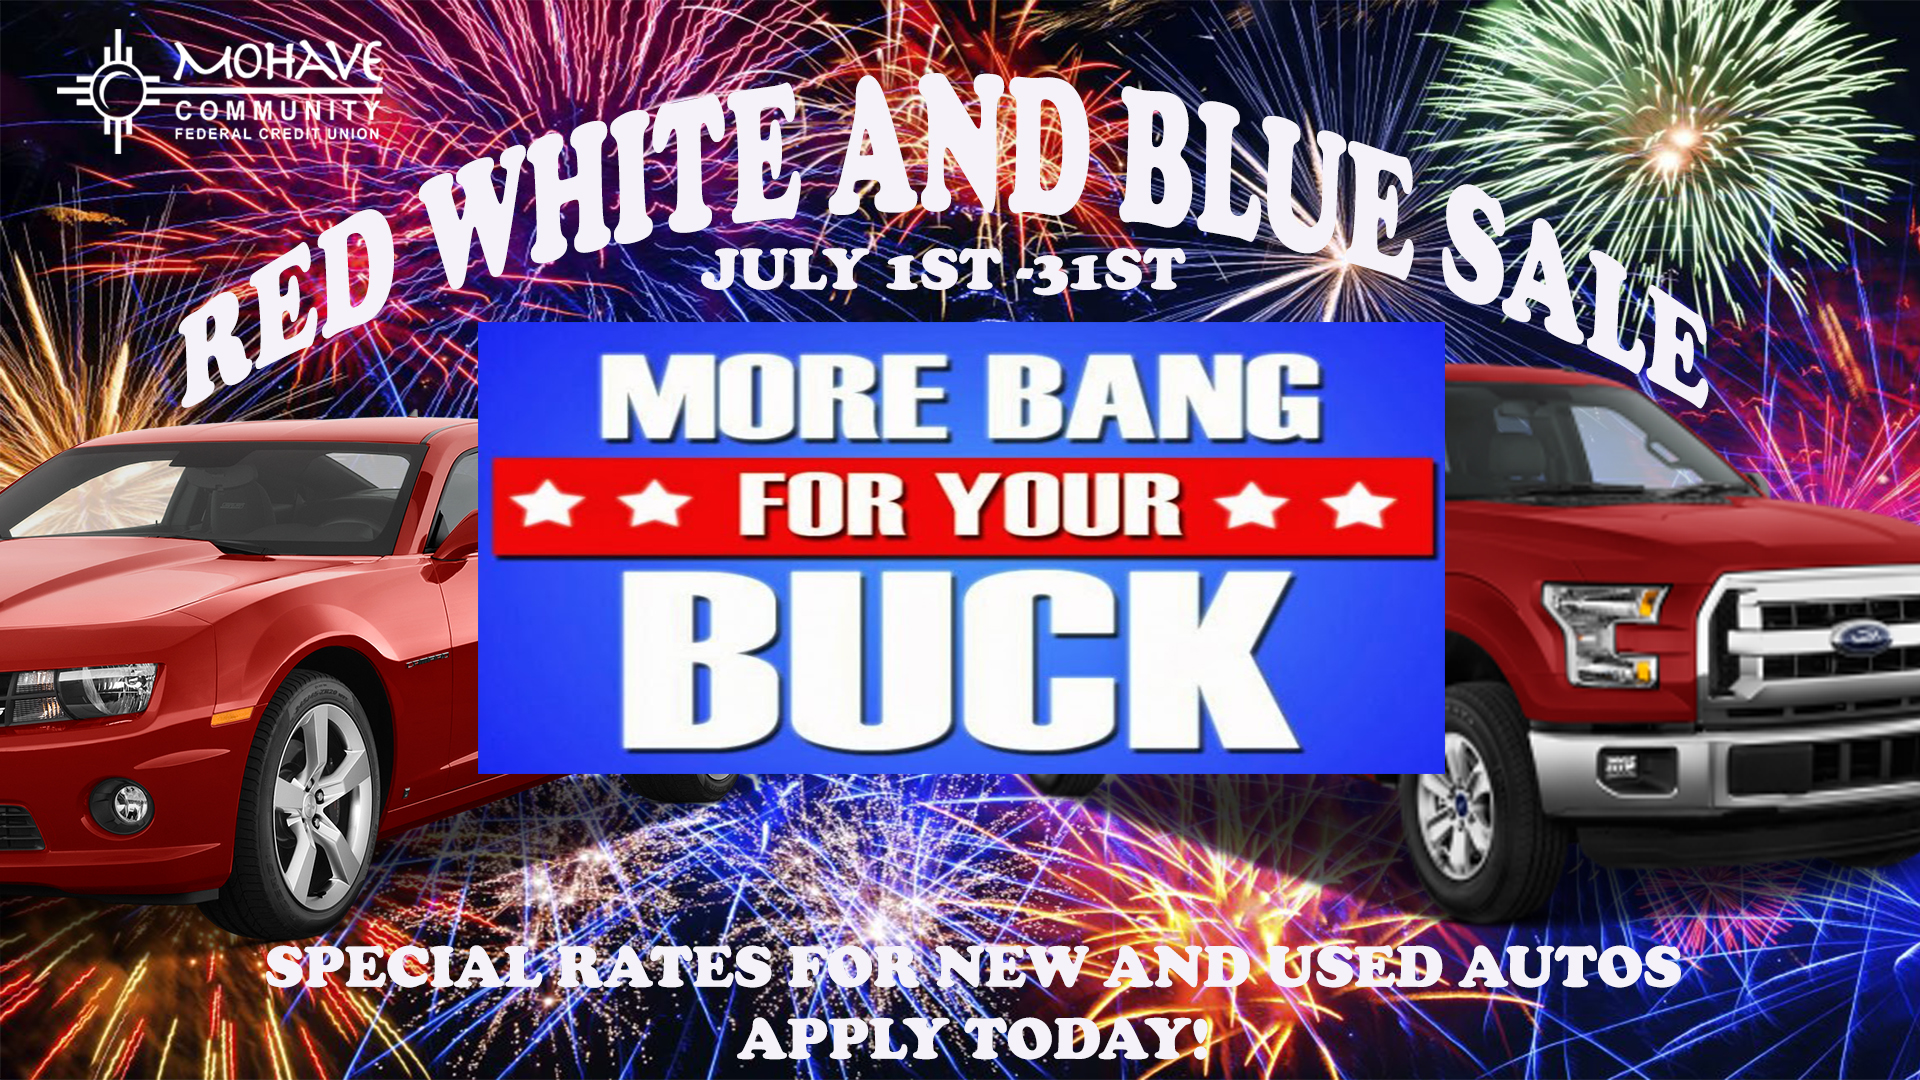 Red White and Blue Sale. Contact 928-753-8000 for more information. July 1st - July 31st special rates on new and used autos.